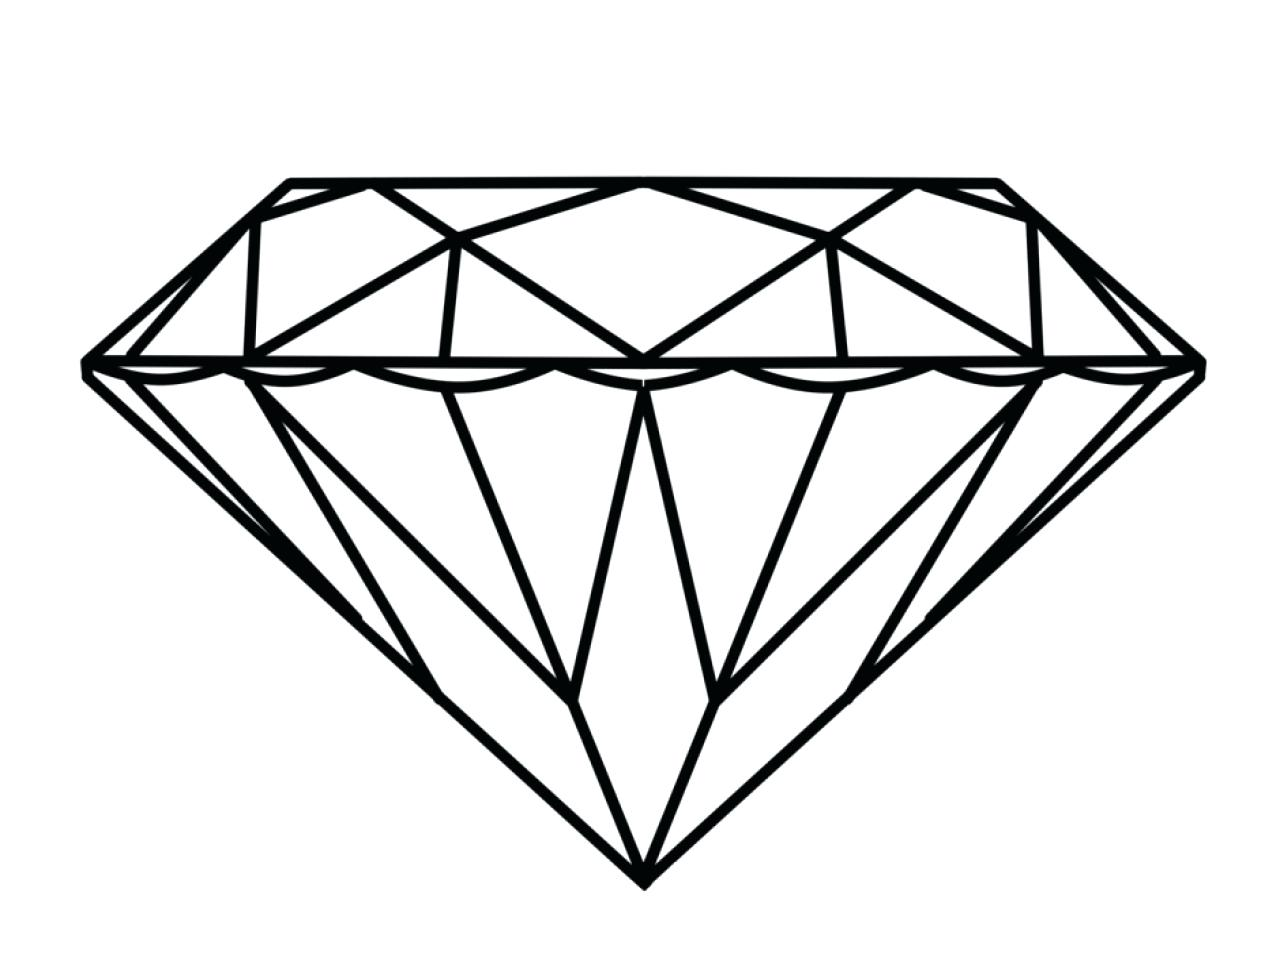 1280x960 Coloring Diamond Shape Coloring Page Pages Free. Diamond Shape